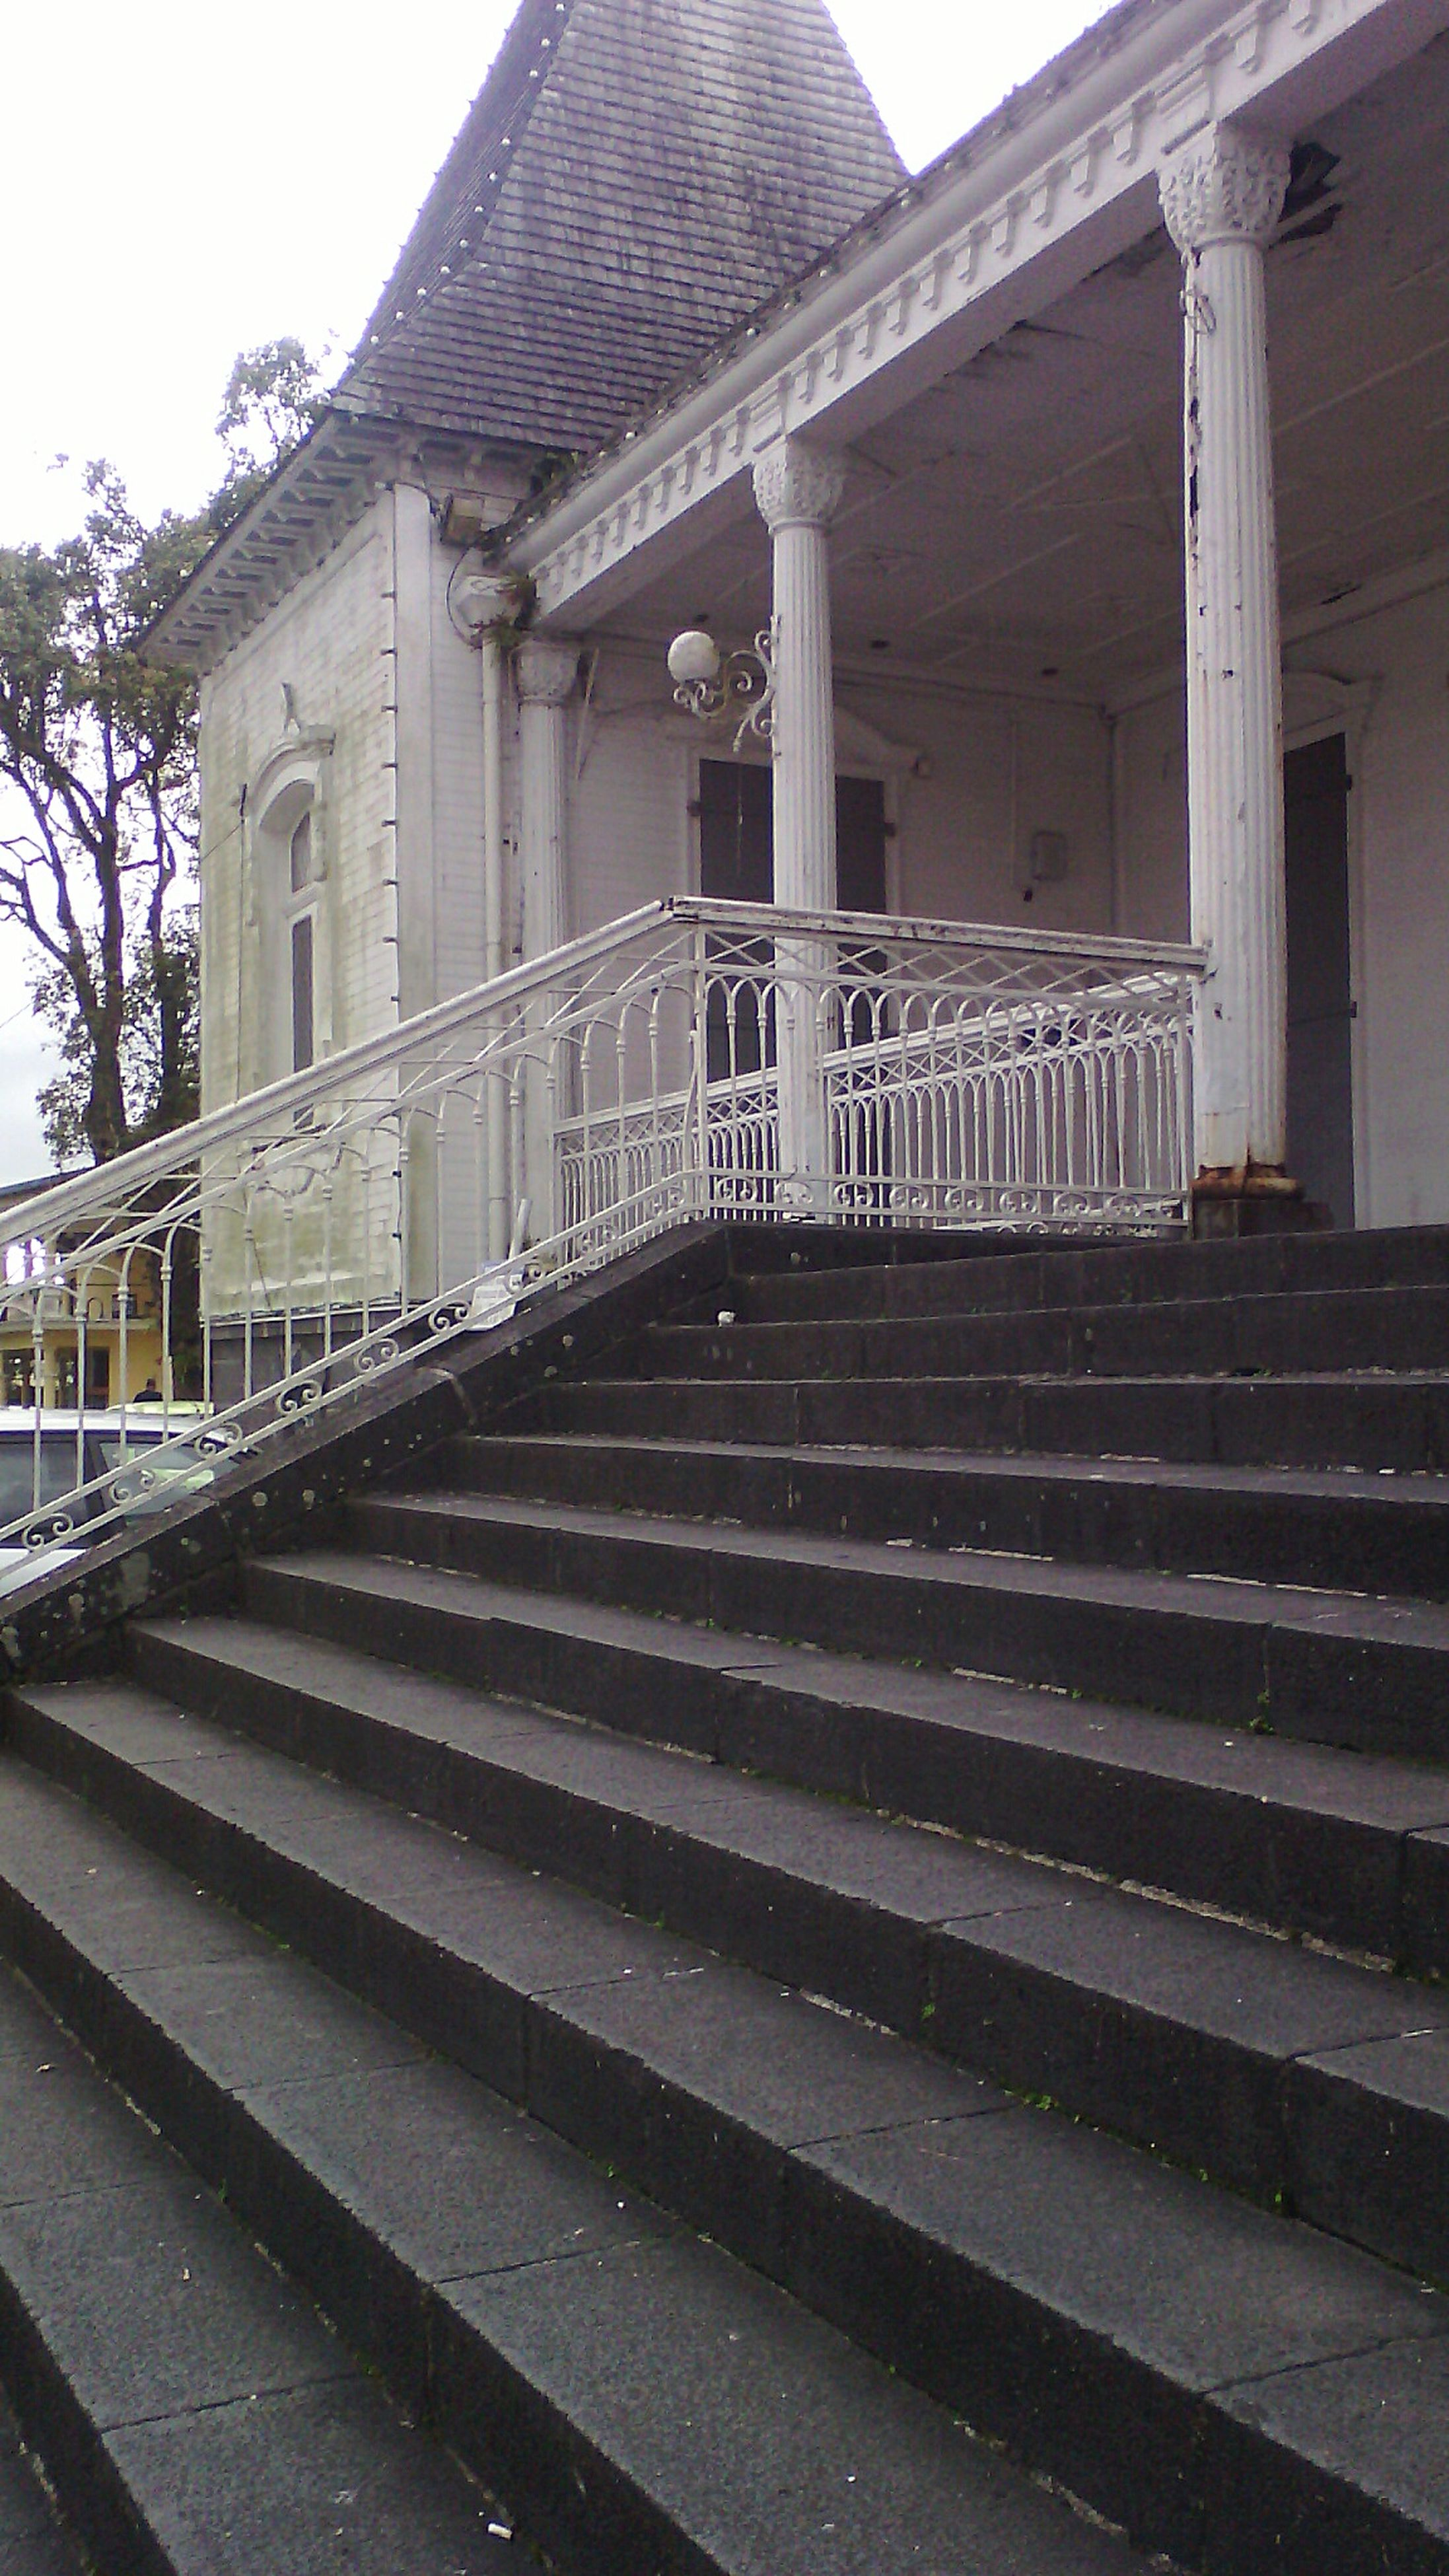 architecture, built structure, steps, building exterior, steps and staircases, religion, low angle view, spirituality, staircase, place of worship, travel destinations, railing, architectural column, sky, outdoors, day, history, famous place, city life, the way forward